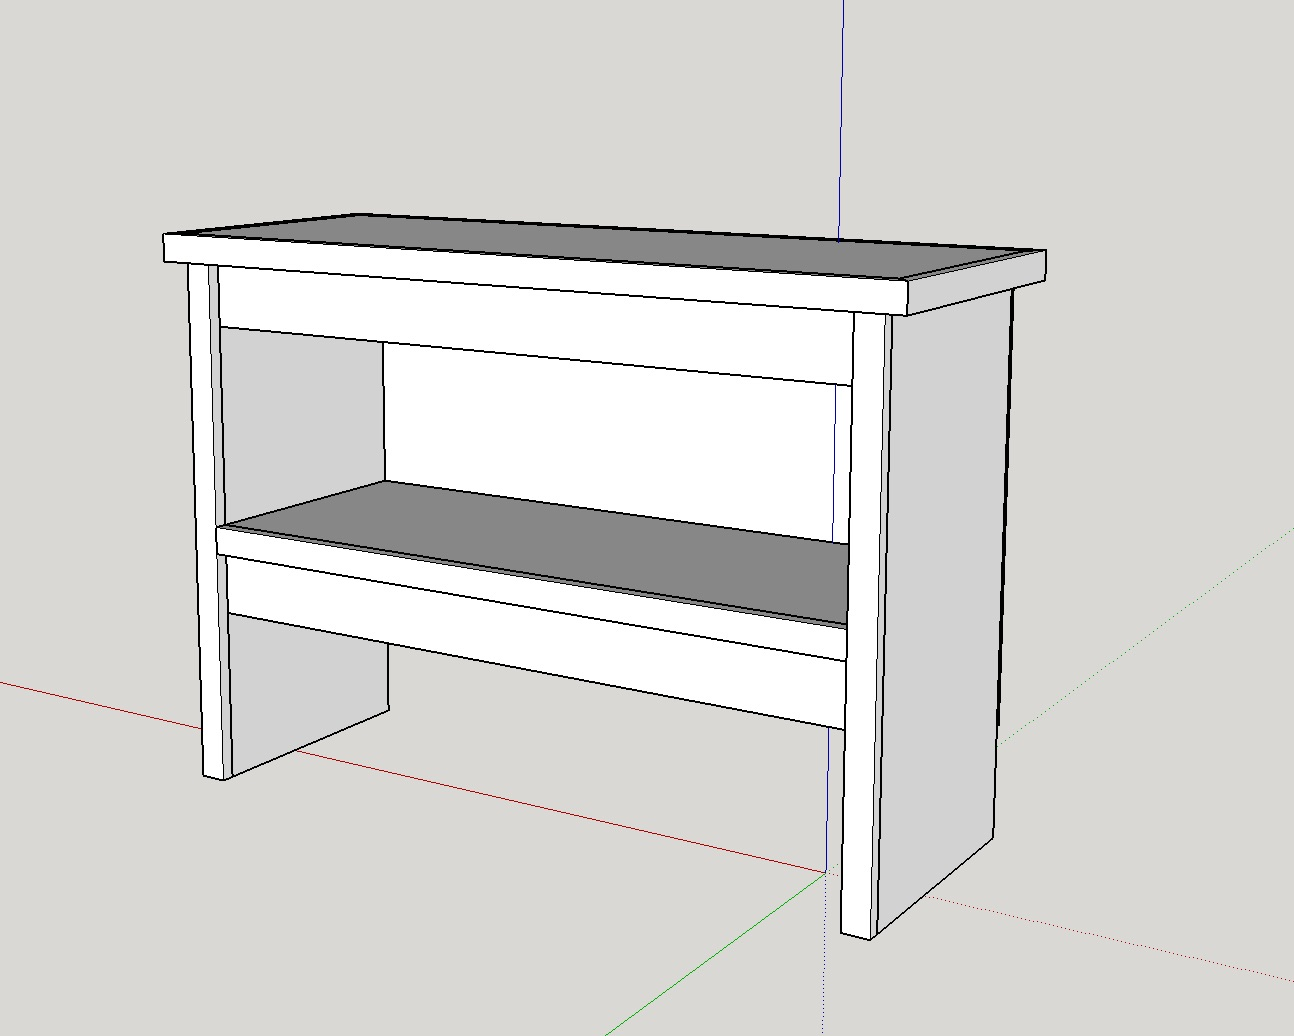 lathe stand sketchup